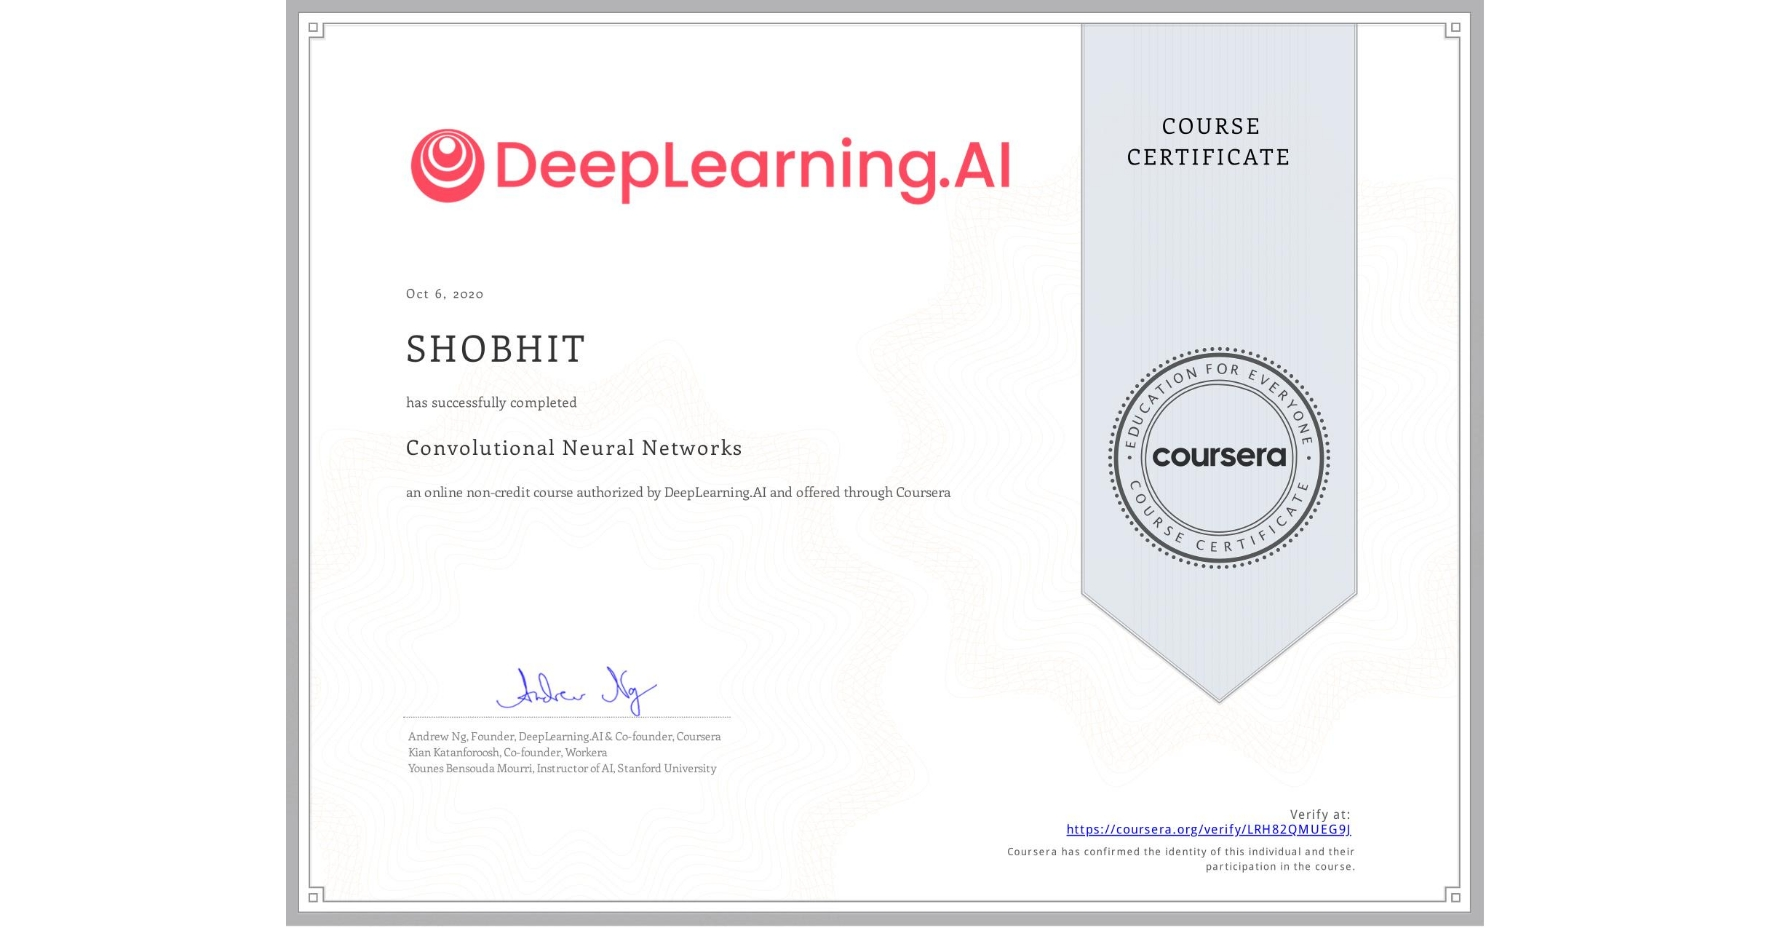 View certificate for SHOBHIT , Convolutional Neural Networks, an online non-credit course authorized by DeepLearning.AI and offered through Coursera